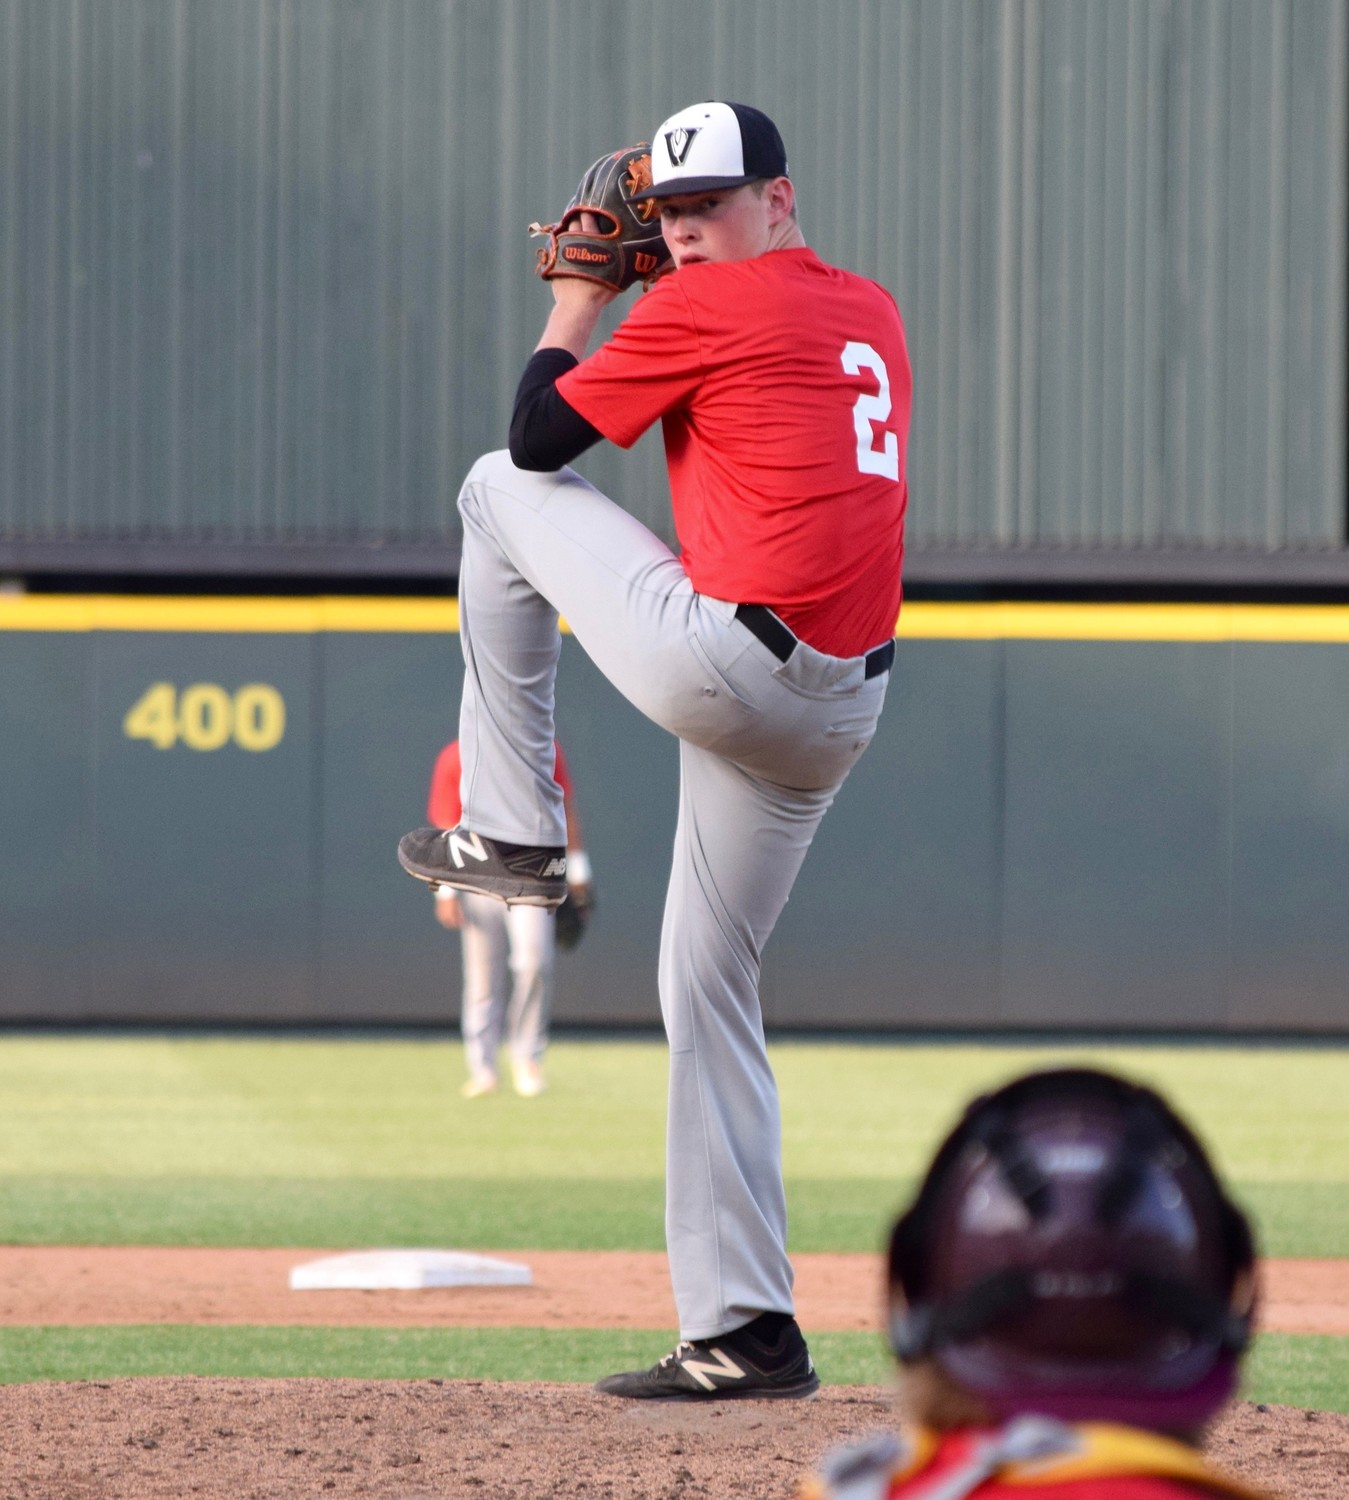 Vandegrift's Alex Maatz was the top pitcher for the South at the Austin Area Baseball Coaches Association All-Star Game Saturday at Dell Diamond.